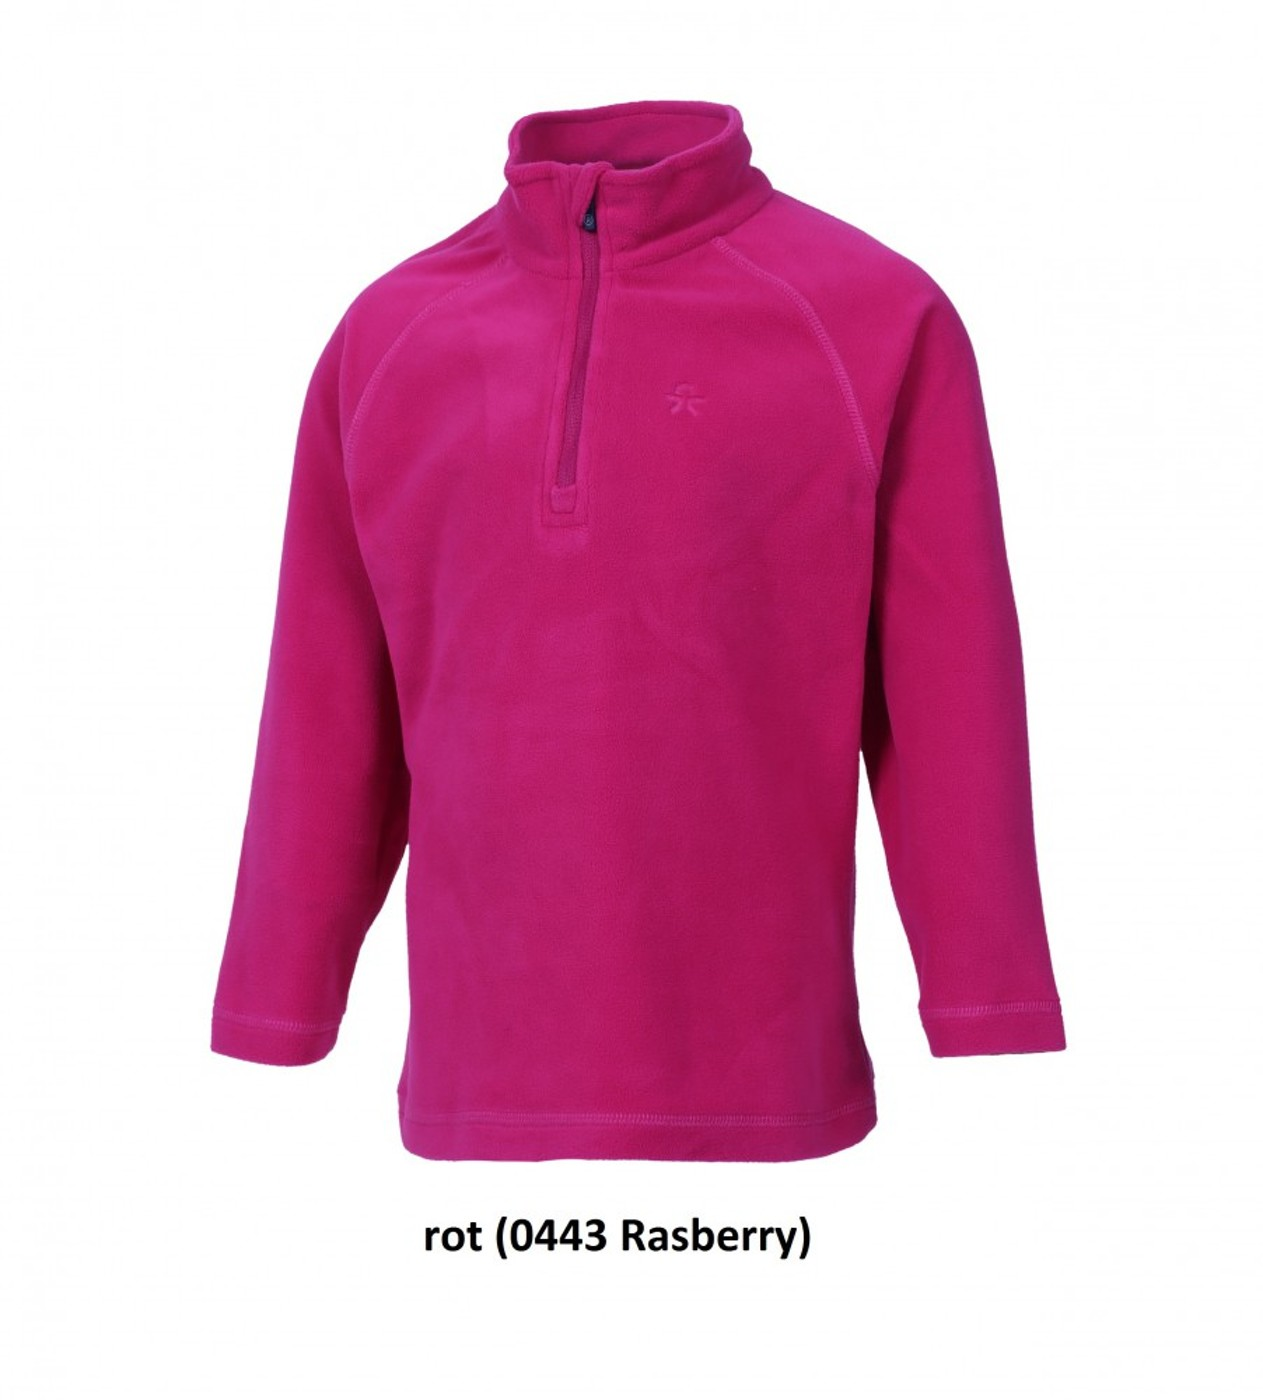 COLOR Sandberg ski pulli - Kinder